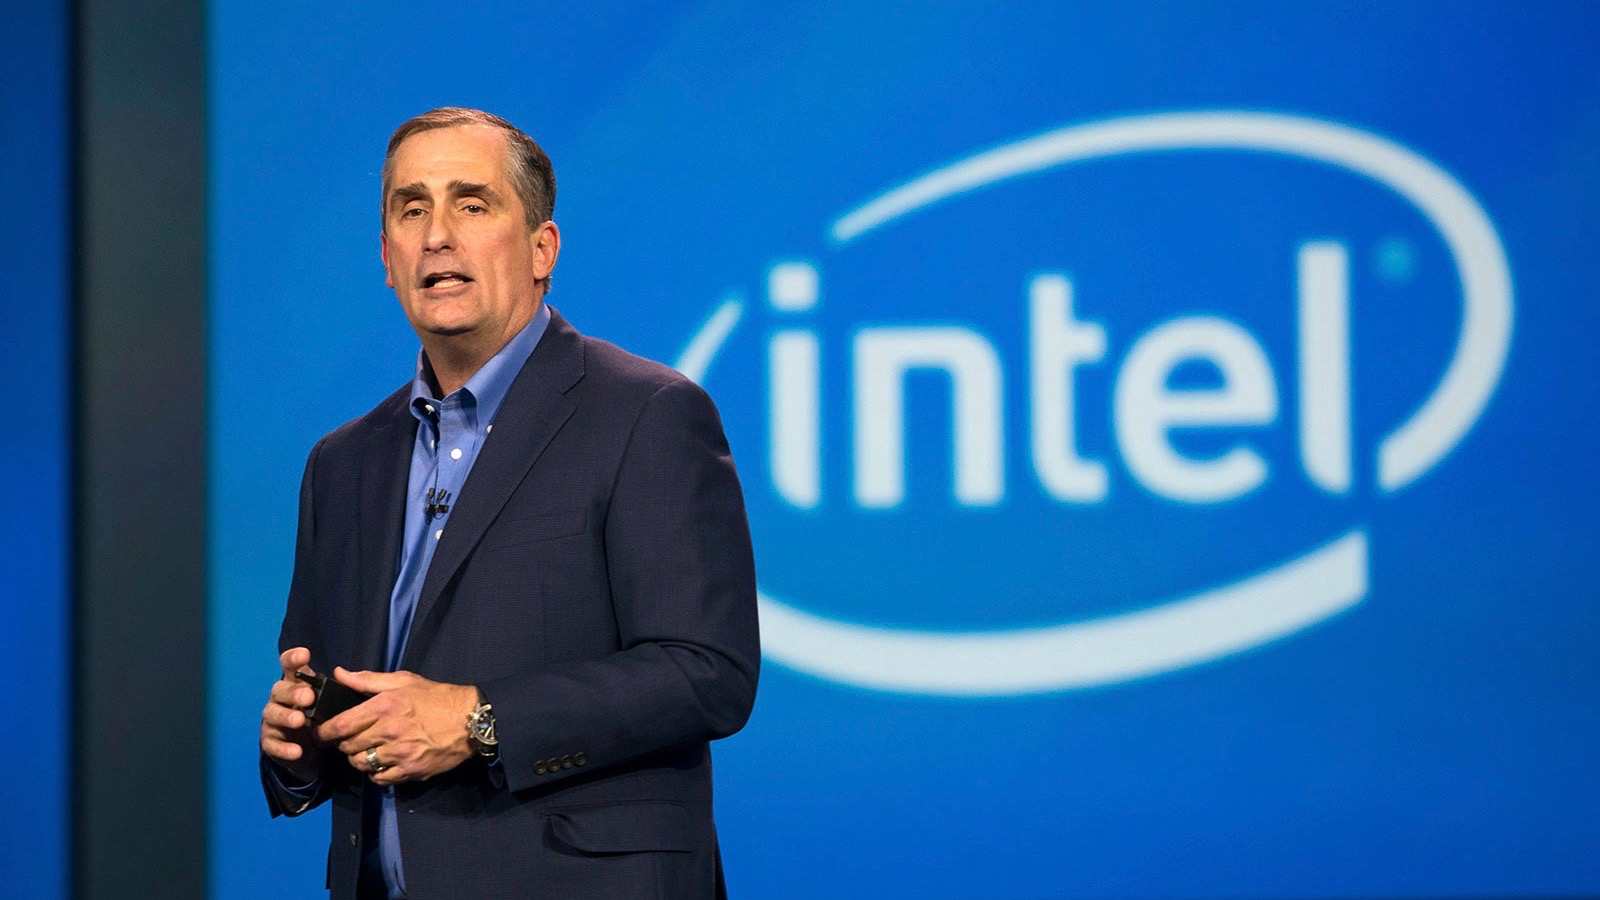 In wake of Spectre & Meltdown, Intel CEO pens open letter reaffirming  commitment to security